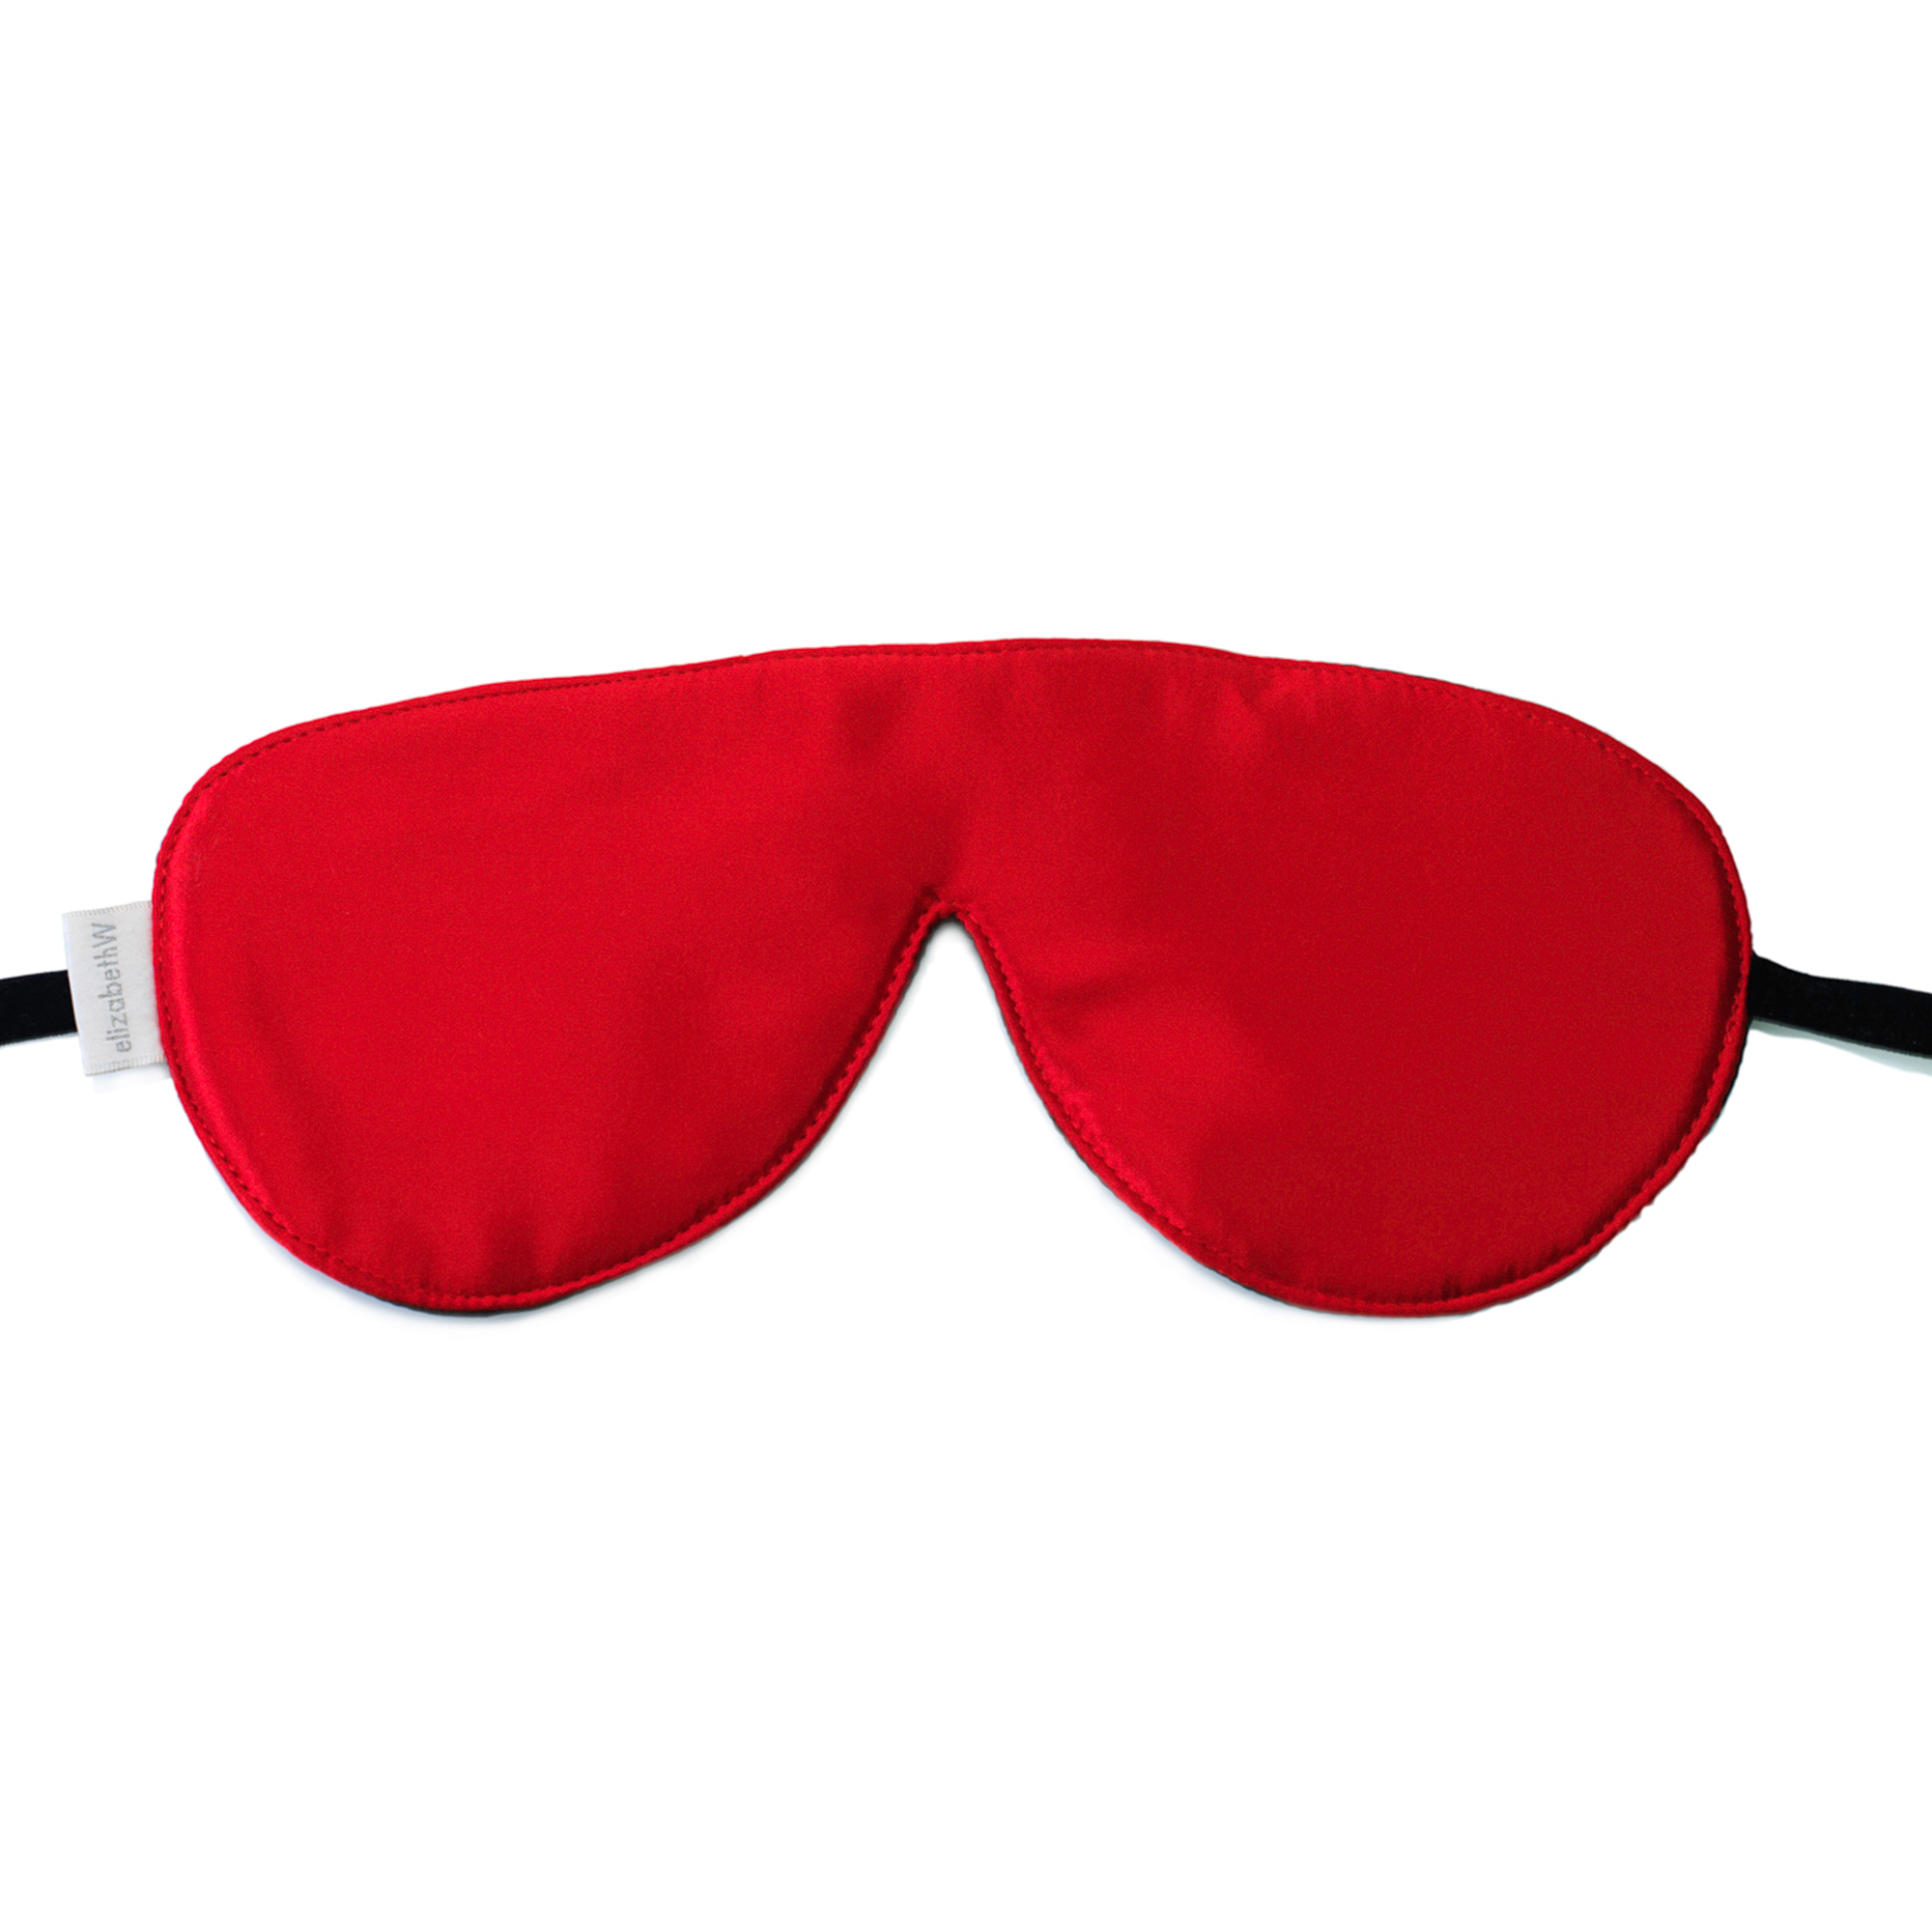 Elizabeth W Sleep Mask, Red